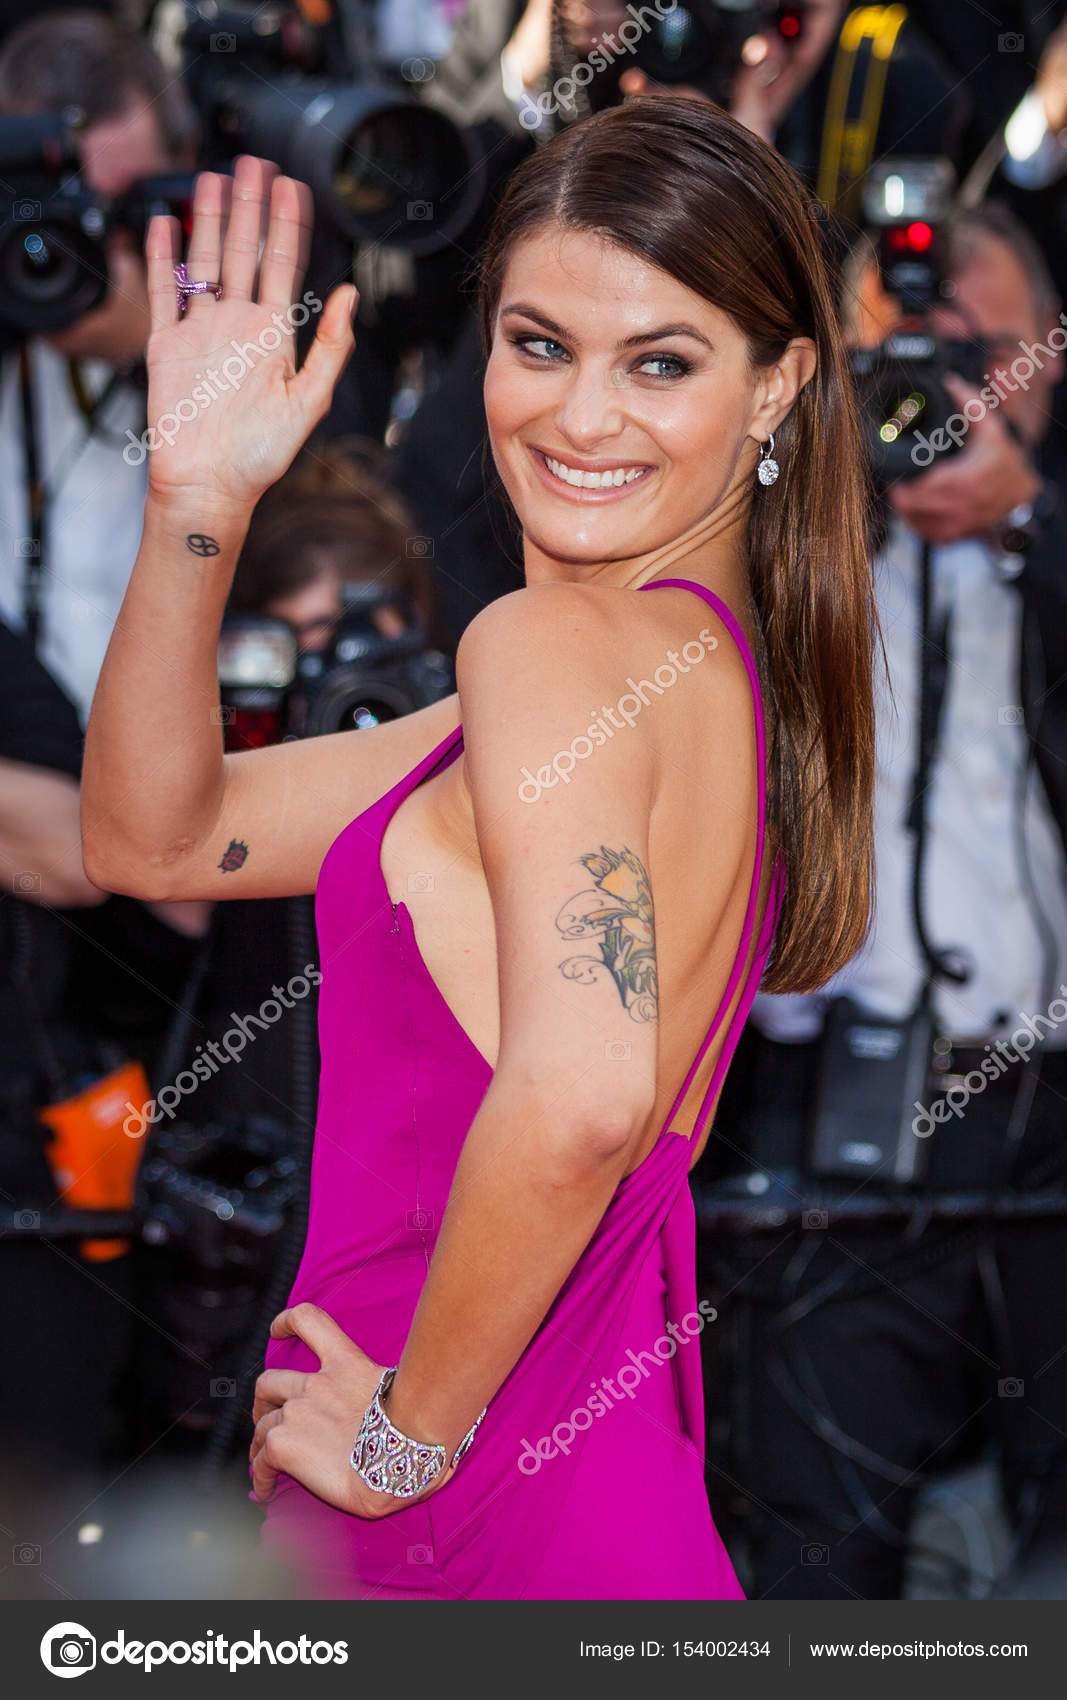 Images Isabeli Fontana nude (74 photos), Ass, Hot, Instagram, braless 2006